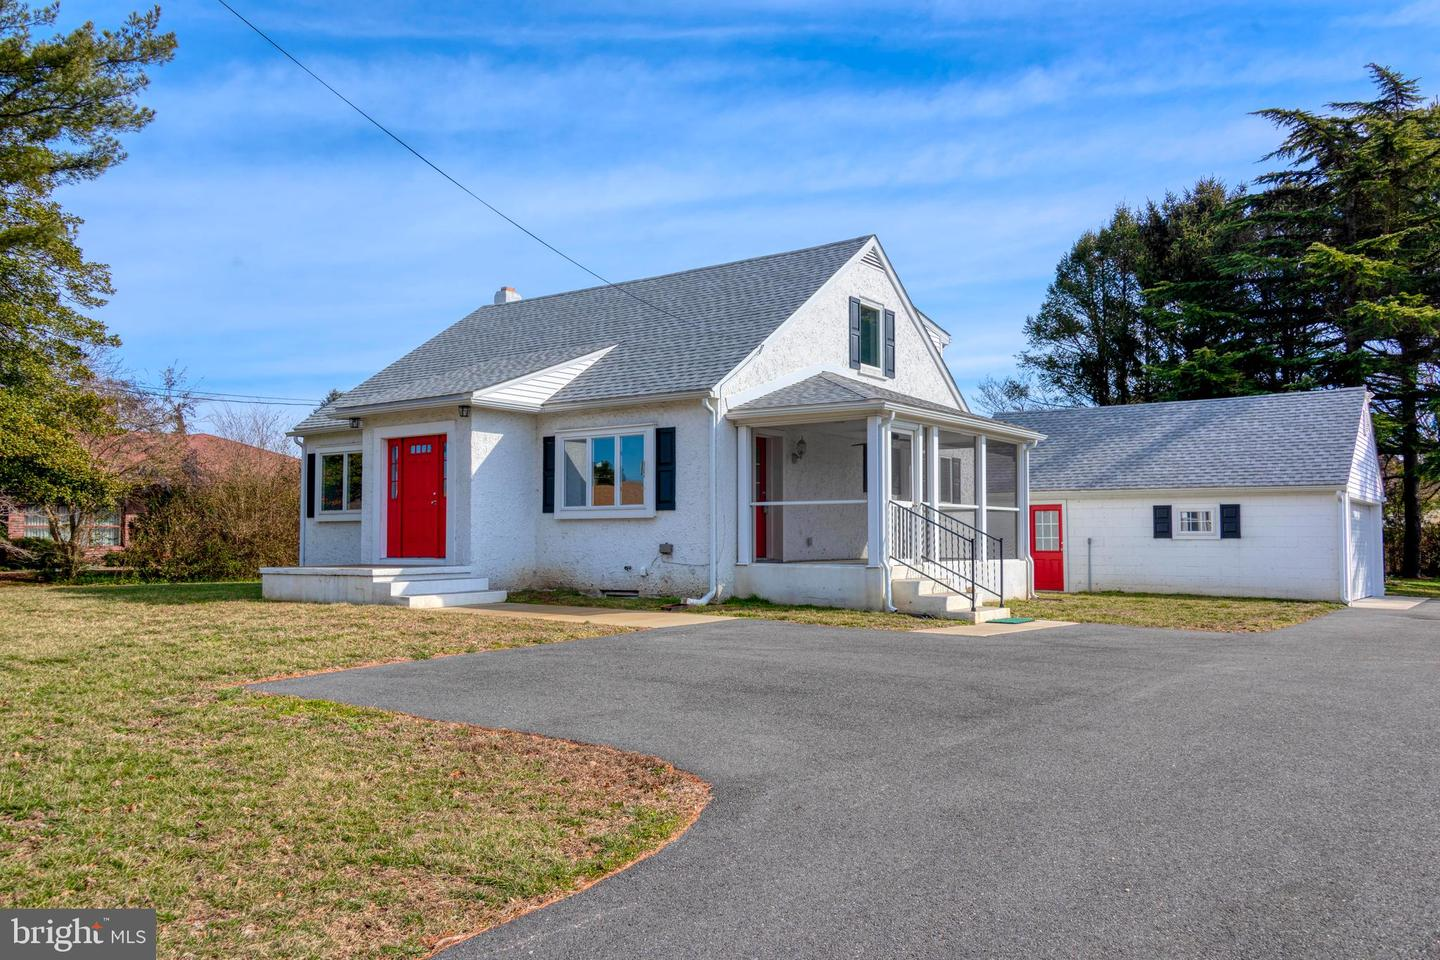 DESU128680-301394020144-2019-02-06-12-26-09 1204 Savannah Rd | Lewes, DE Real Estate For Sale | MLS# Desu128680  - Coldwell Banker Resort Realty